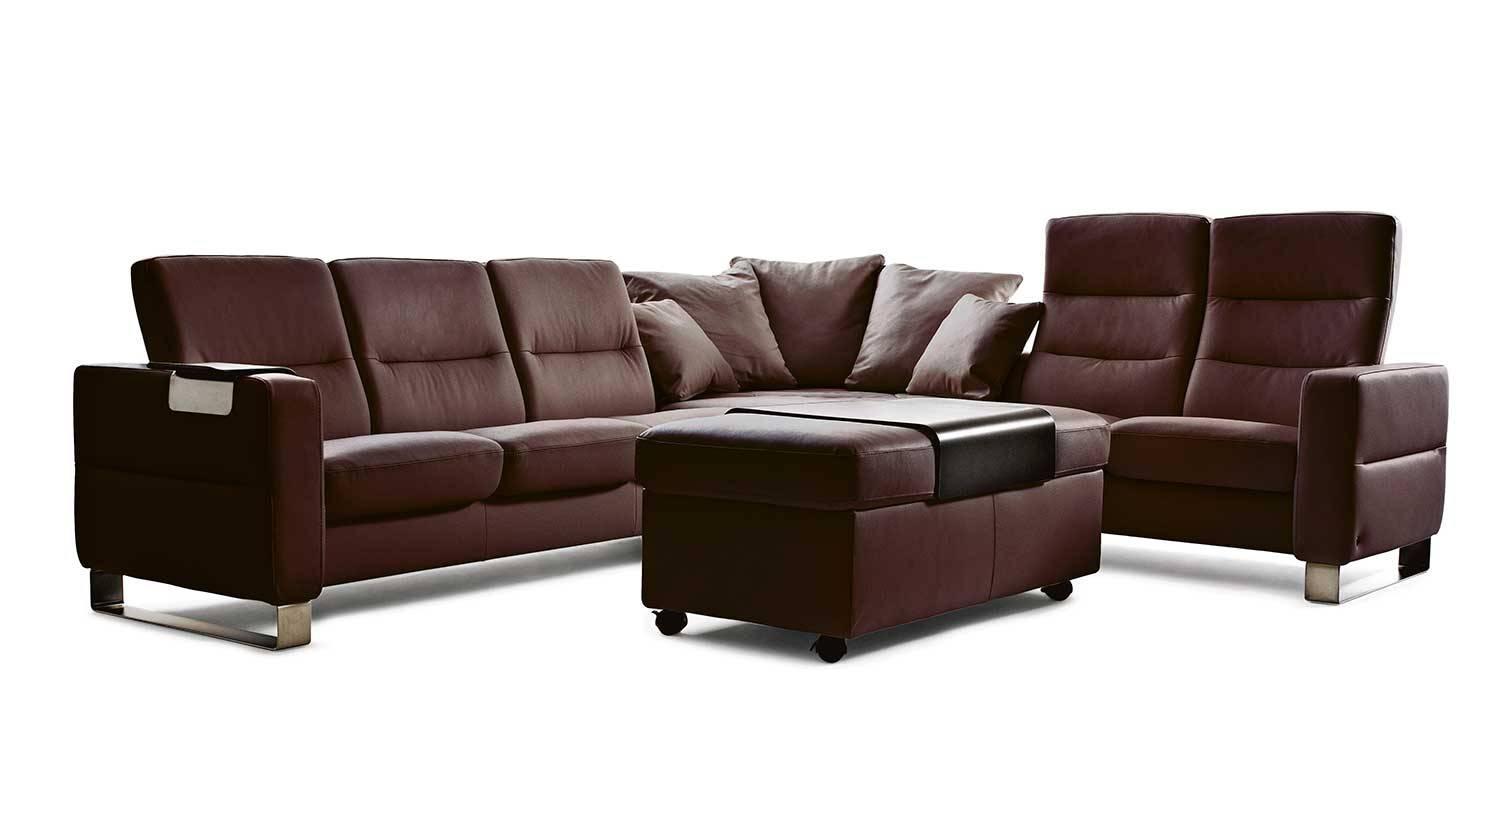 30 best collection of ekornes sectional sofa. Black Bedroom Furniture Sets. Home Design Ideas